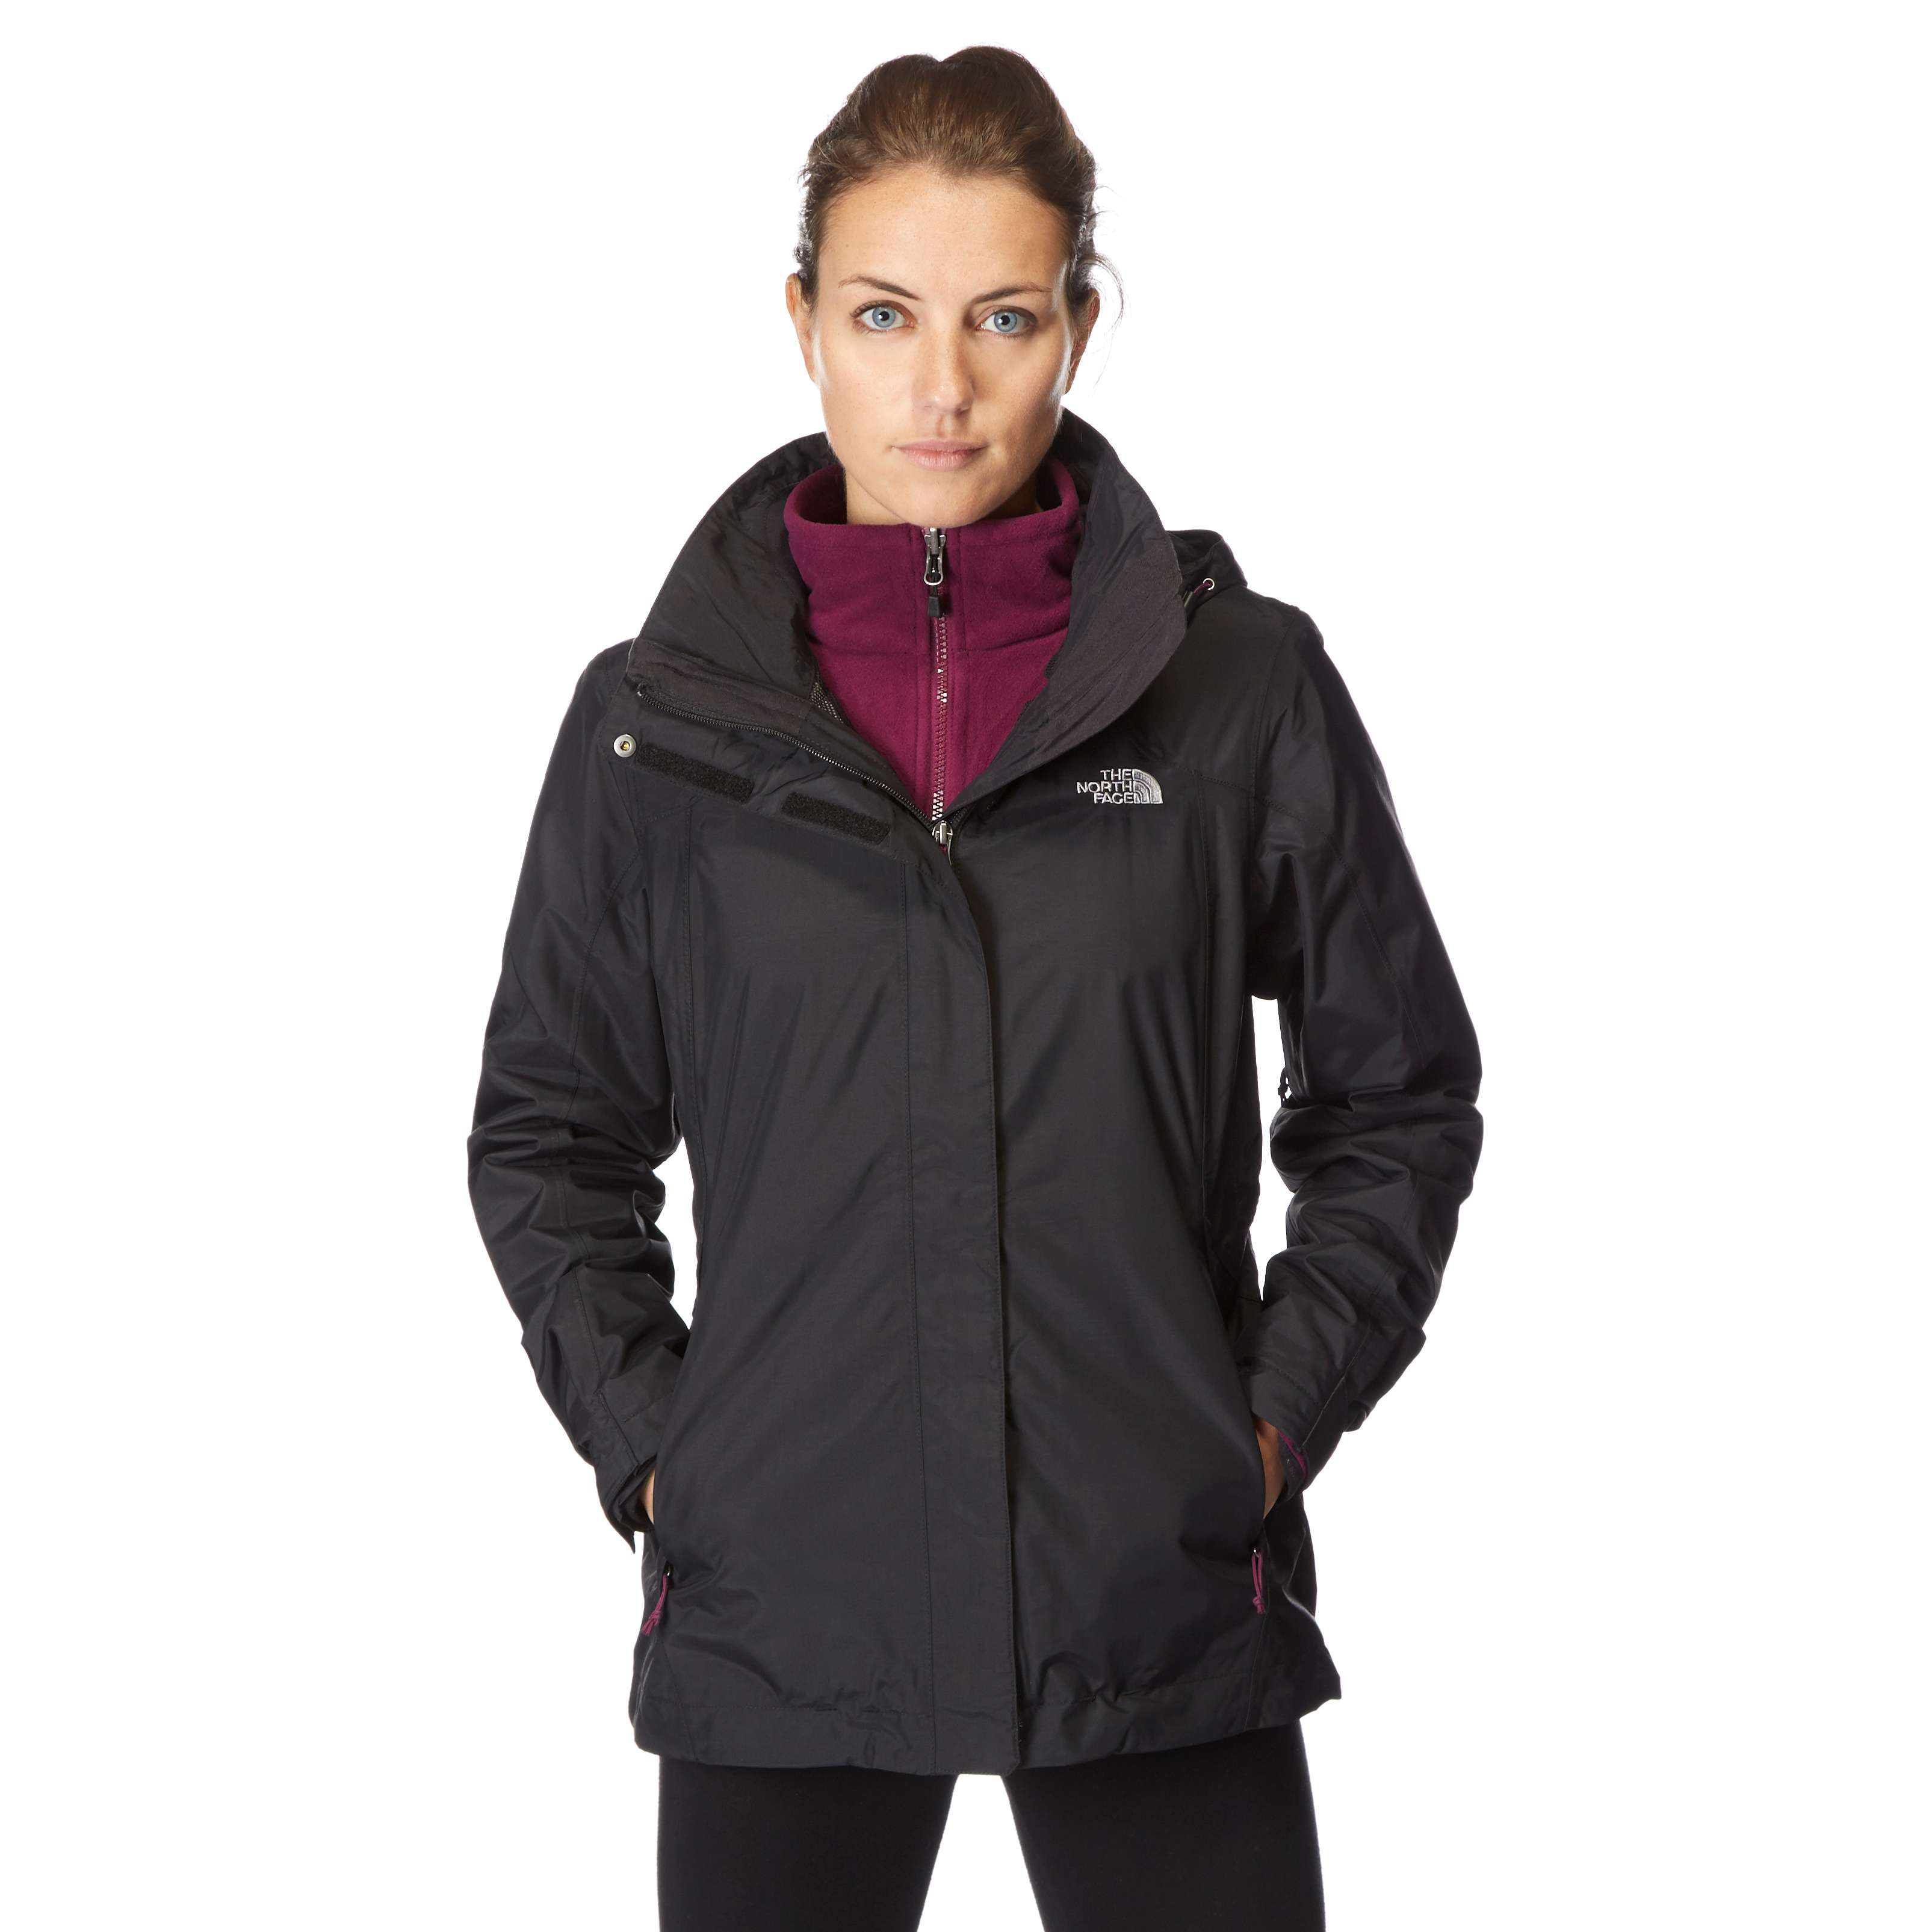 THE NORTH FACE Women's Evolution II TriClimate 3 in 1 Jacket